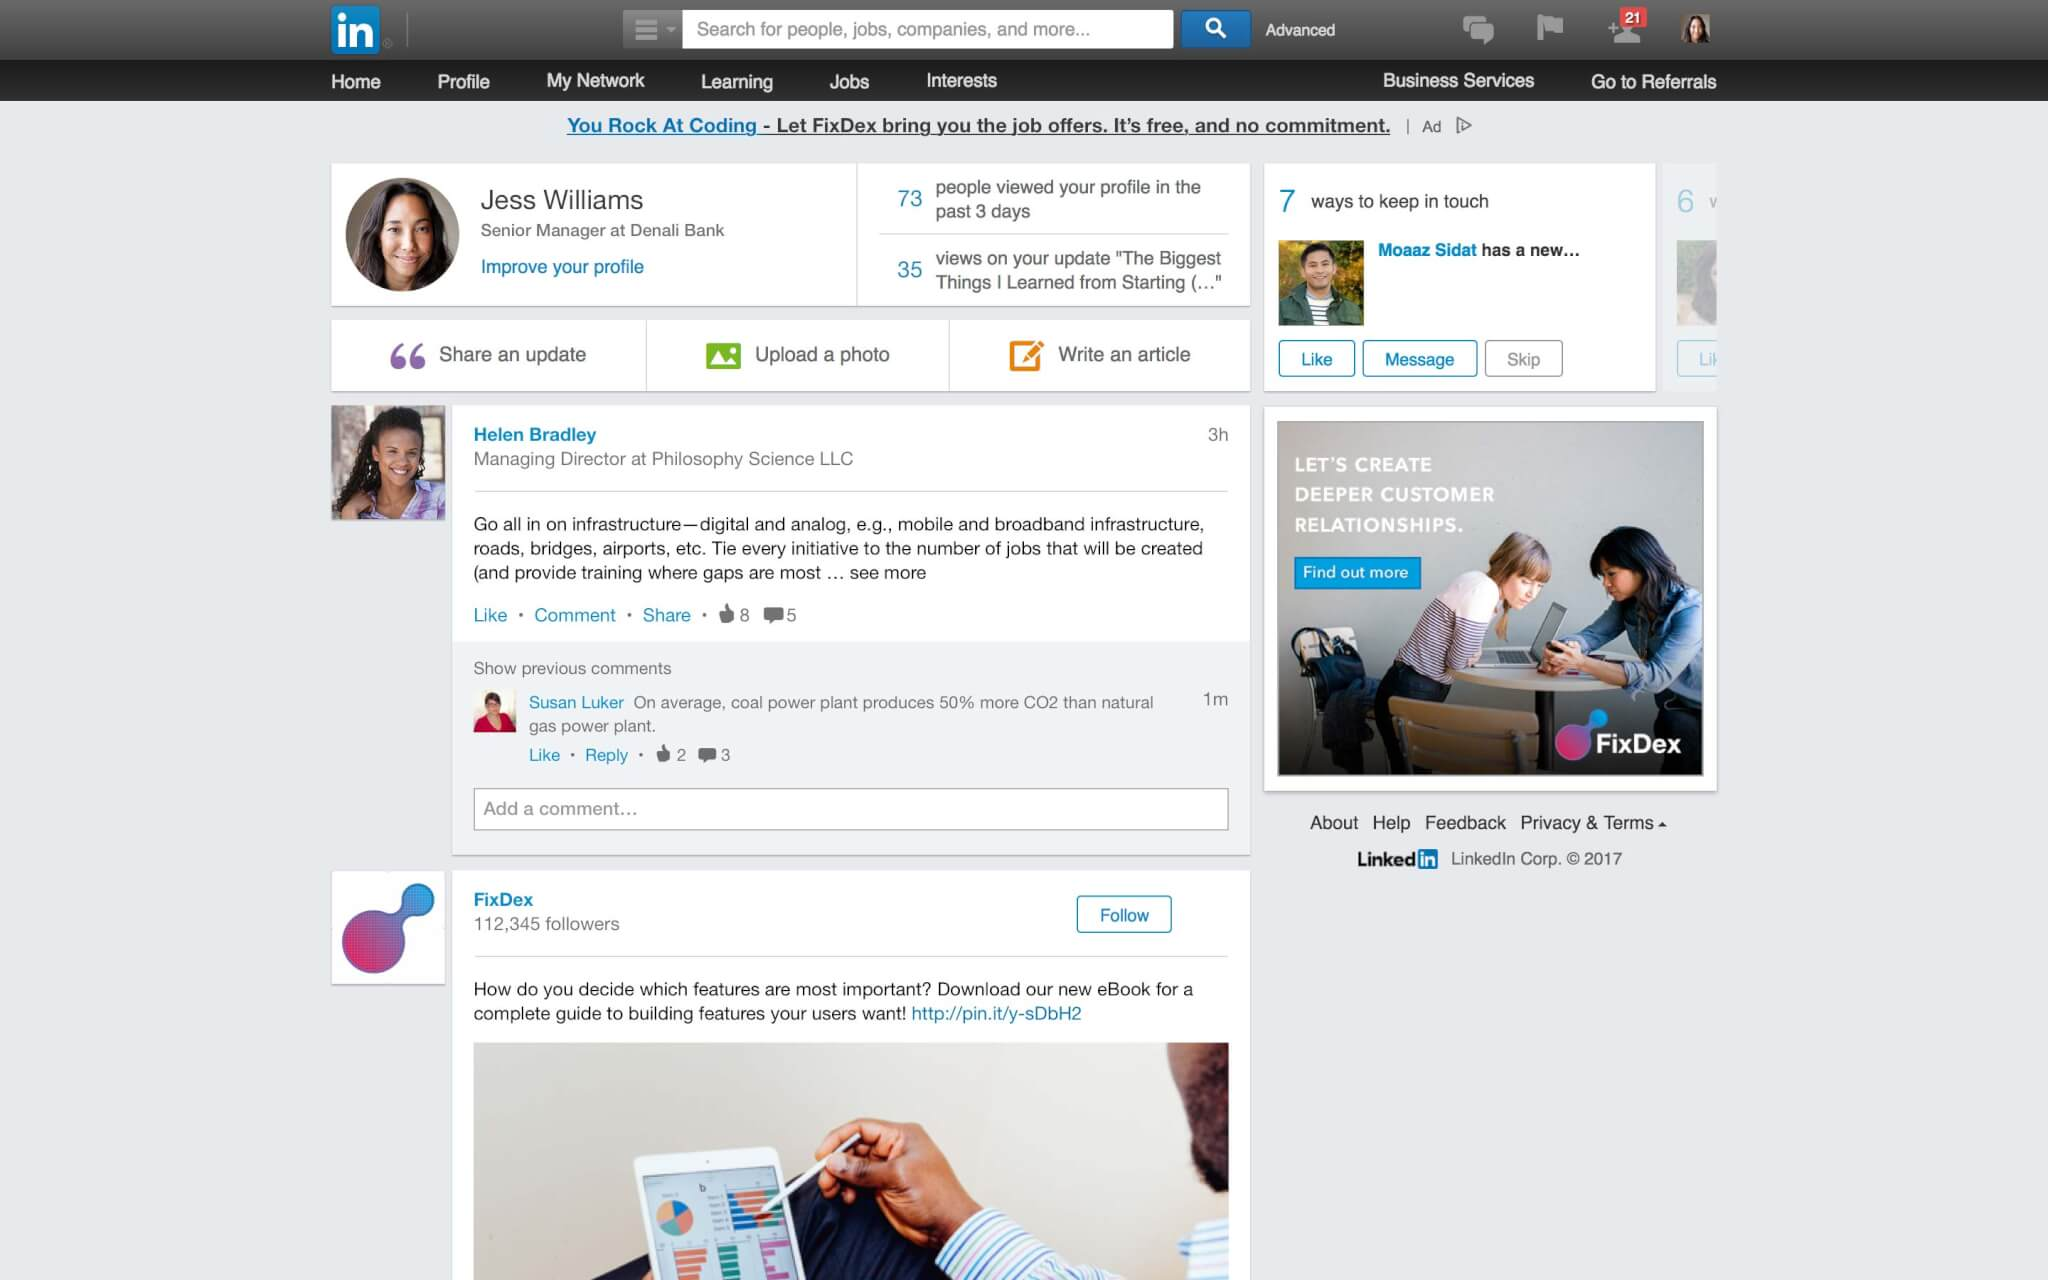 An old version of LinkedIn's News Feed prior to the rollout of the 2017 redesign.